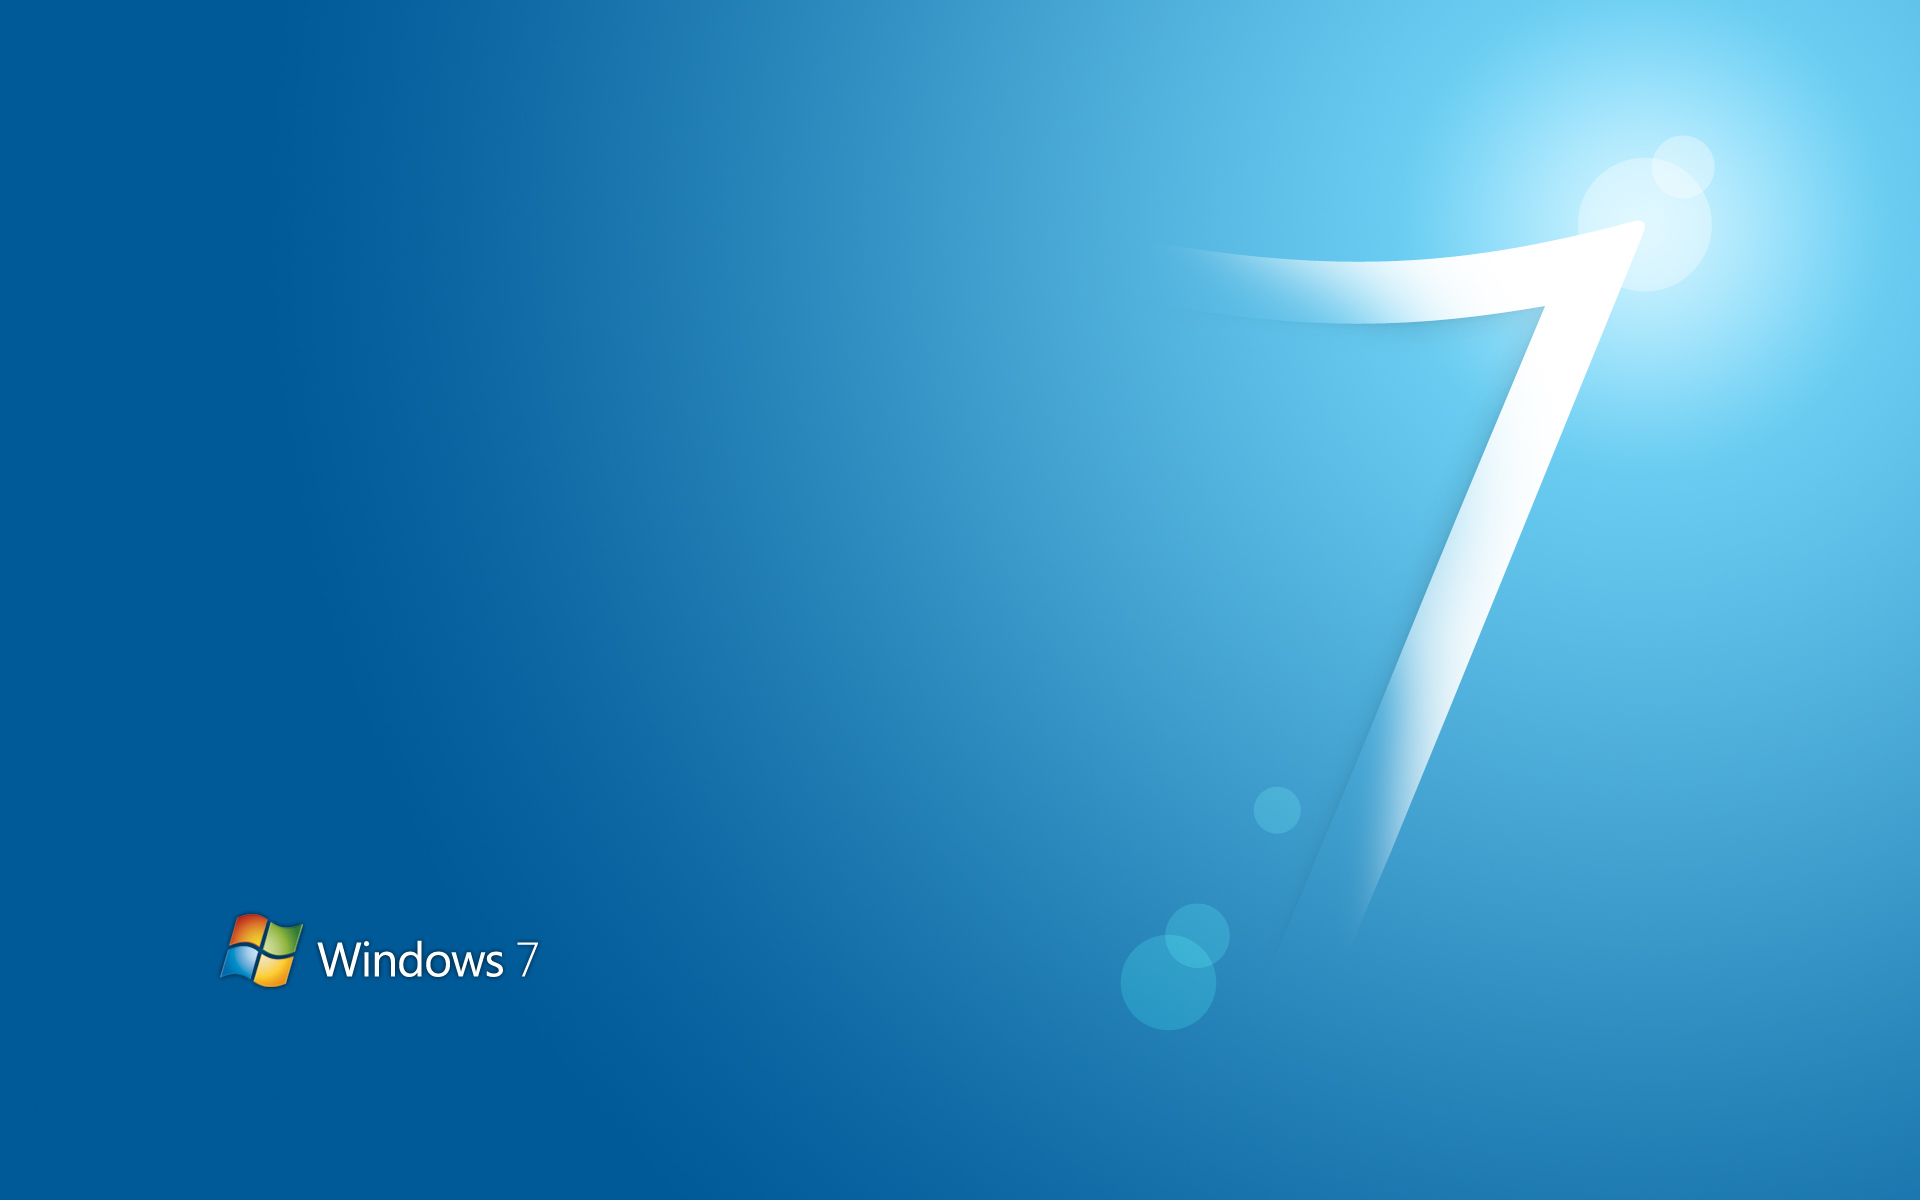 windows 7 awesome wallpapers